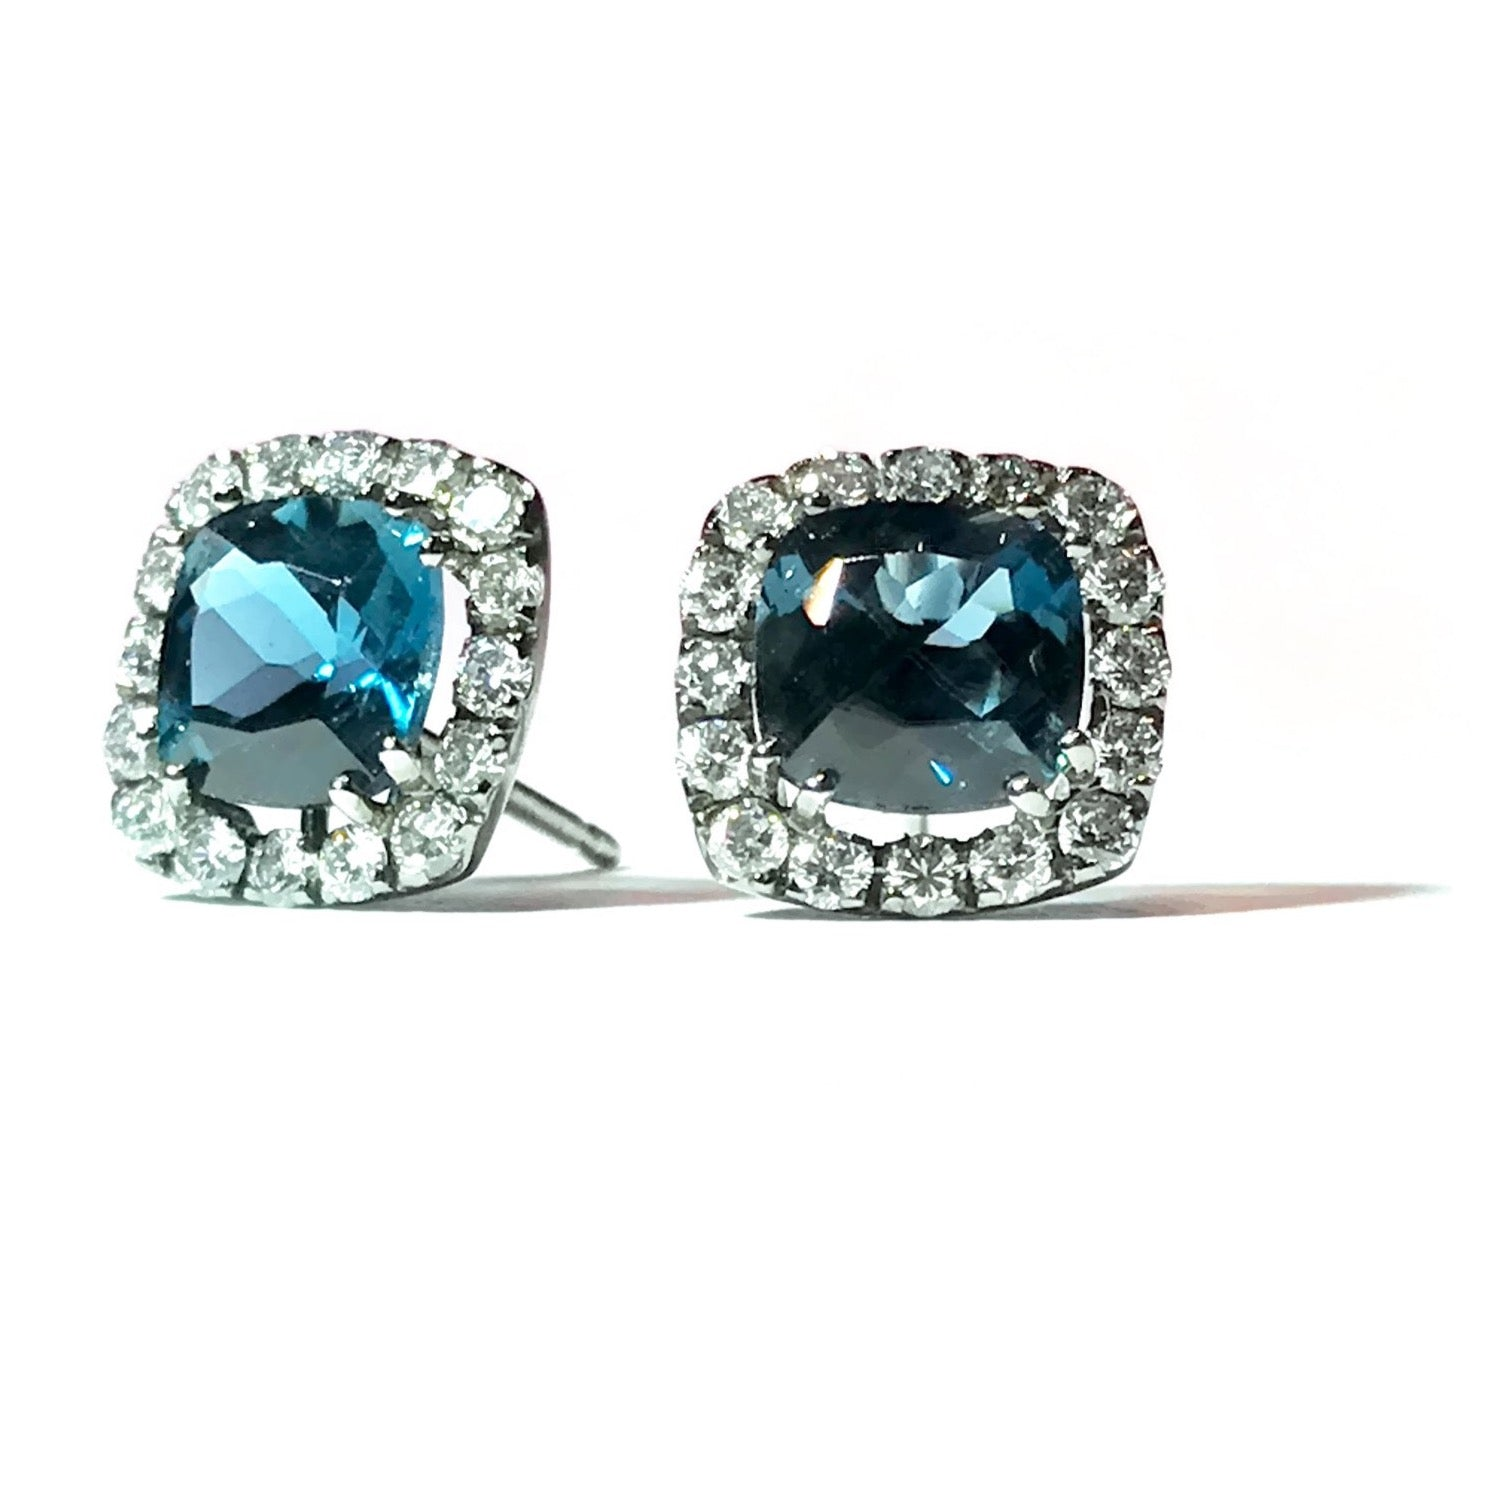 dylani topaz jewelers blue stud jewelry stores index hampshire springer s earrings new maine